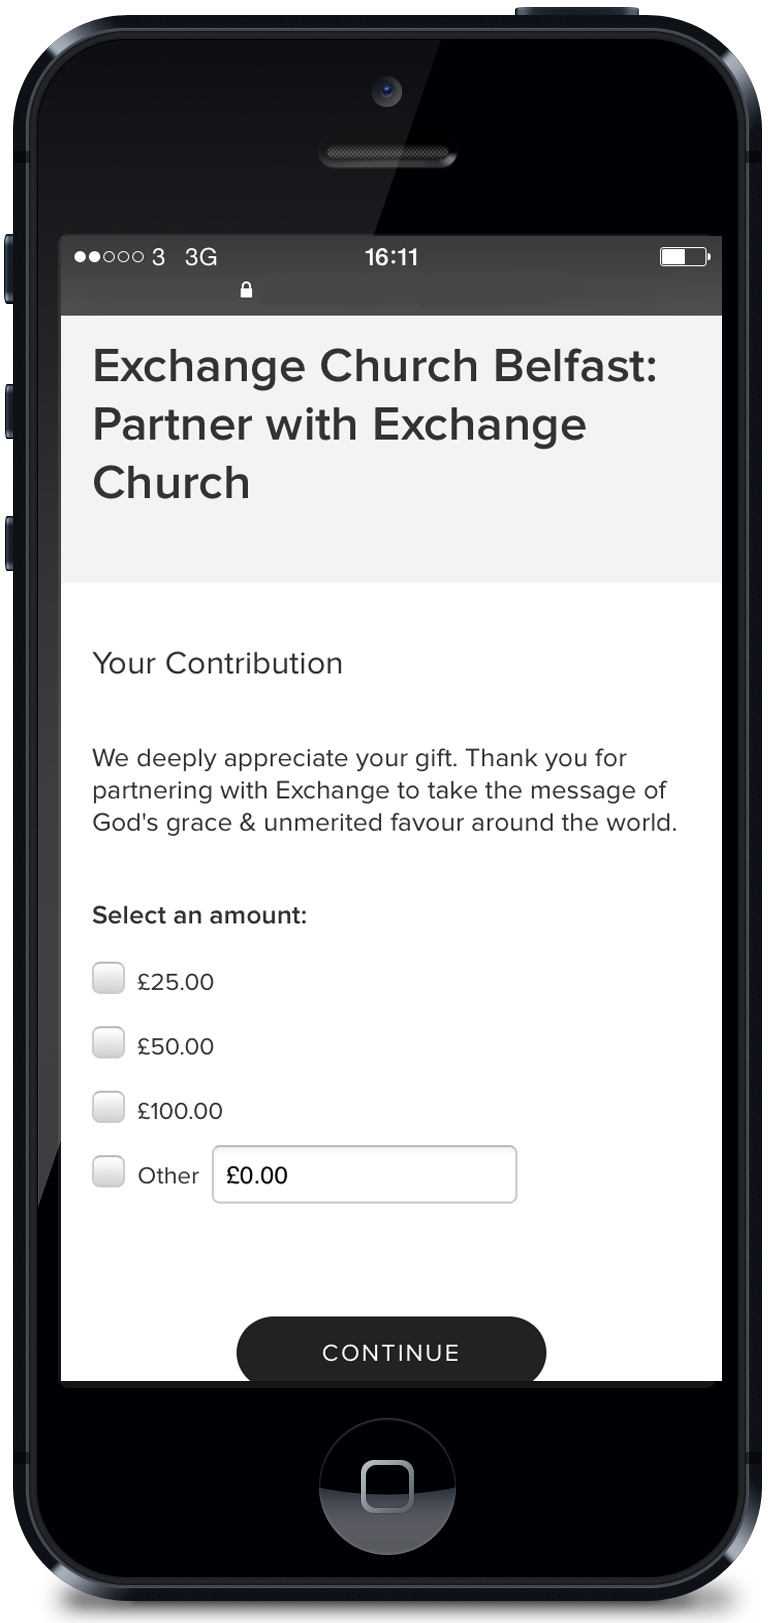 You can partner with us now through your phone by giving using the Exchange app. An easy interface makes giving quick & easy!